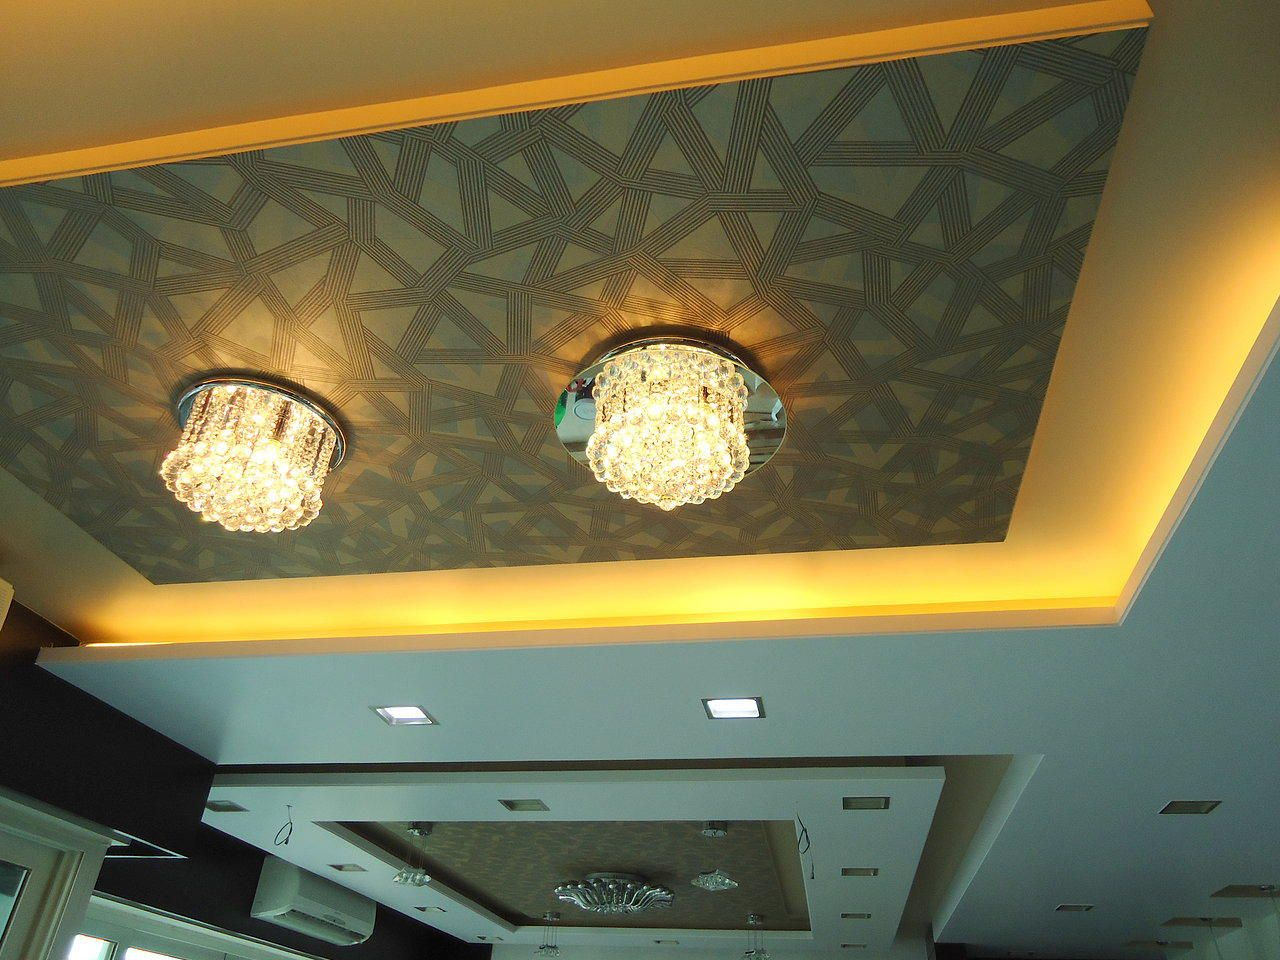 Bedroom ceiling paint ideas - Pictures Of False Ceiling Design For Living Room Pictures Of False Ceiling Design For Living Room